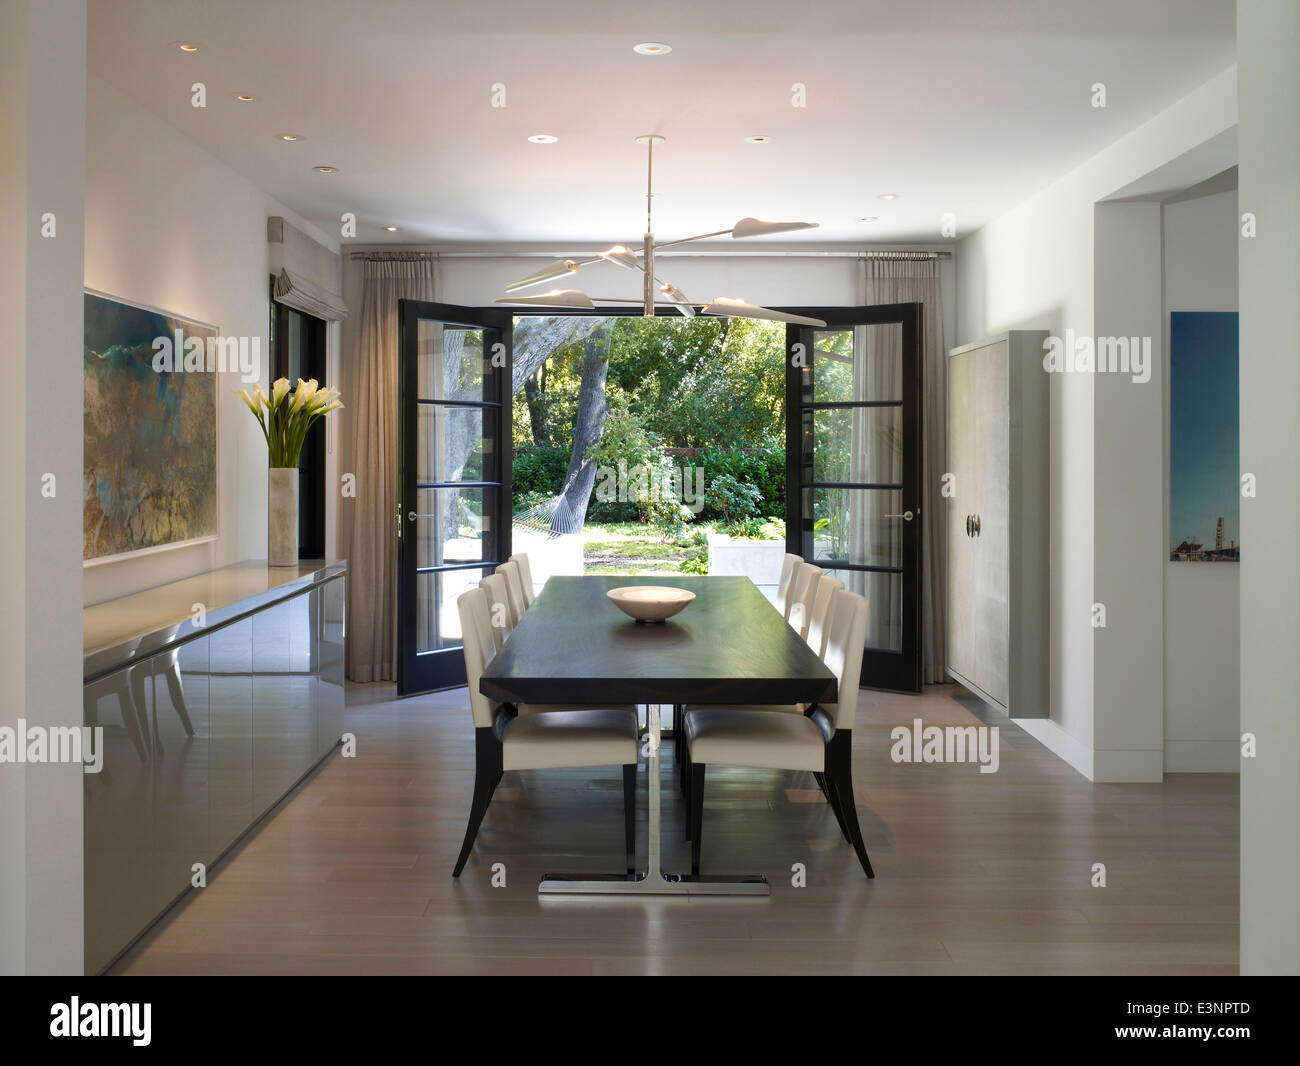 View through door to garden from dining area in Stone House Atherton California USA. & View through door to garden from dining area in Stone House Stock ...